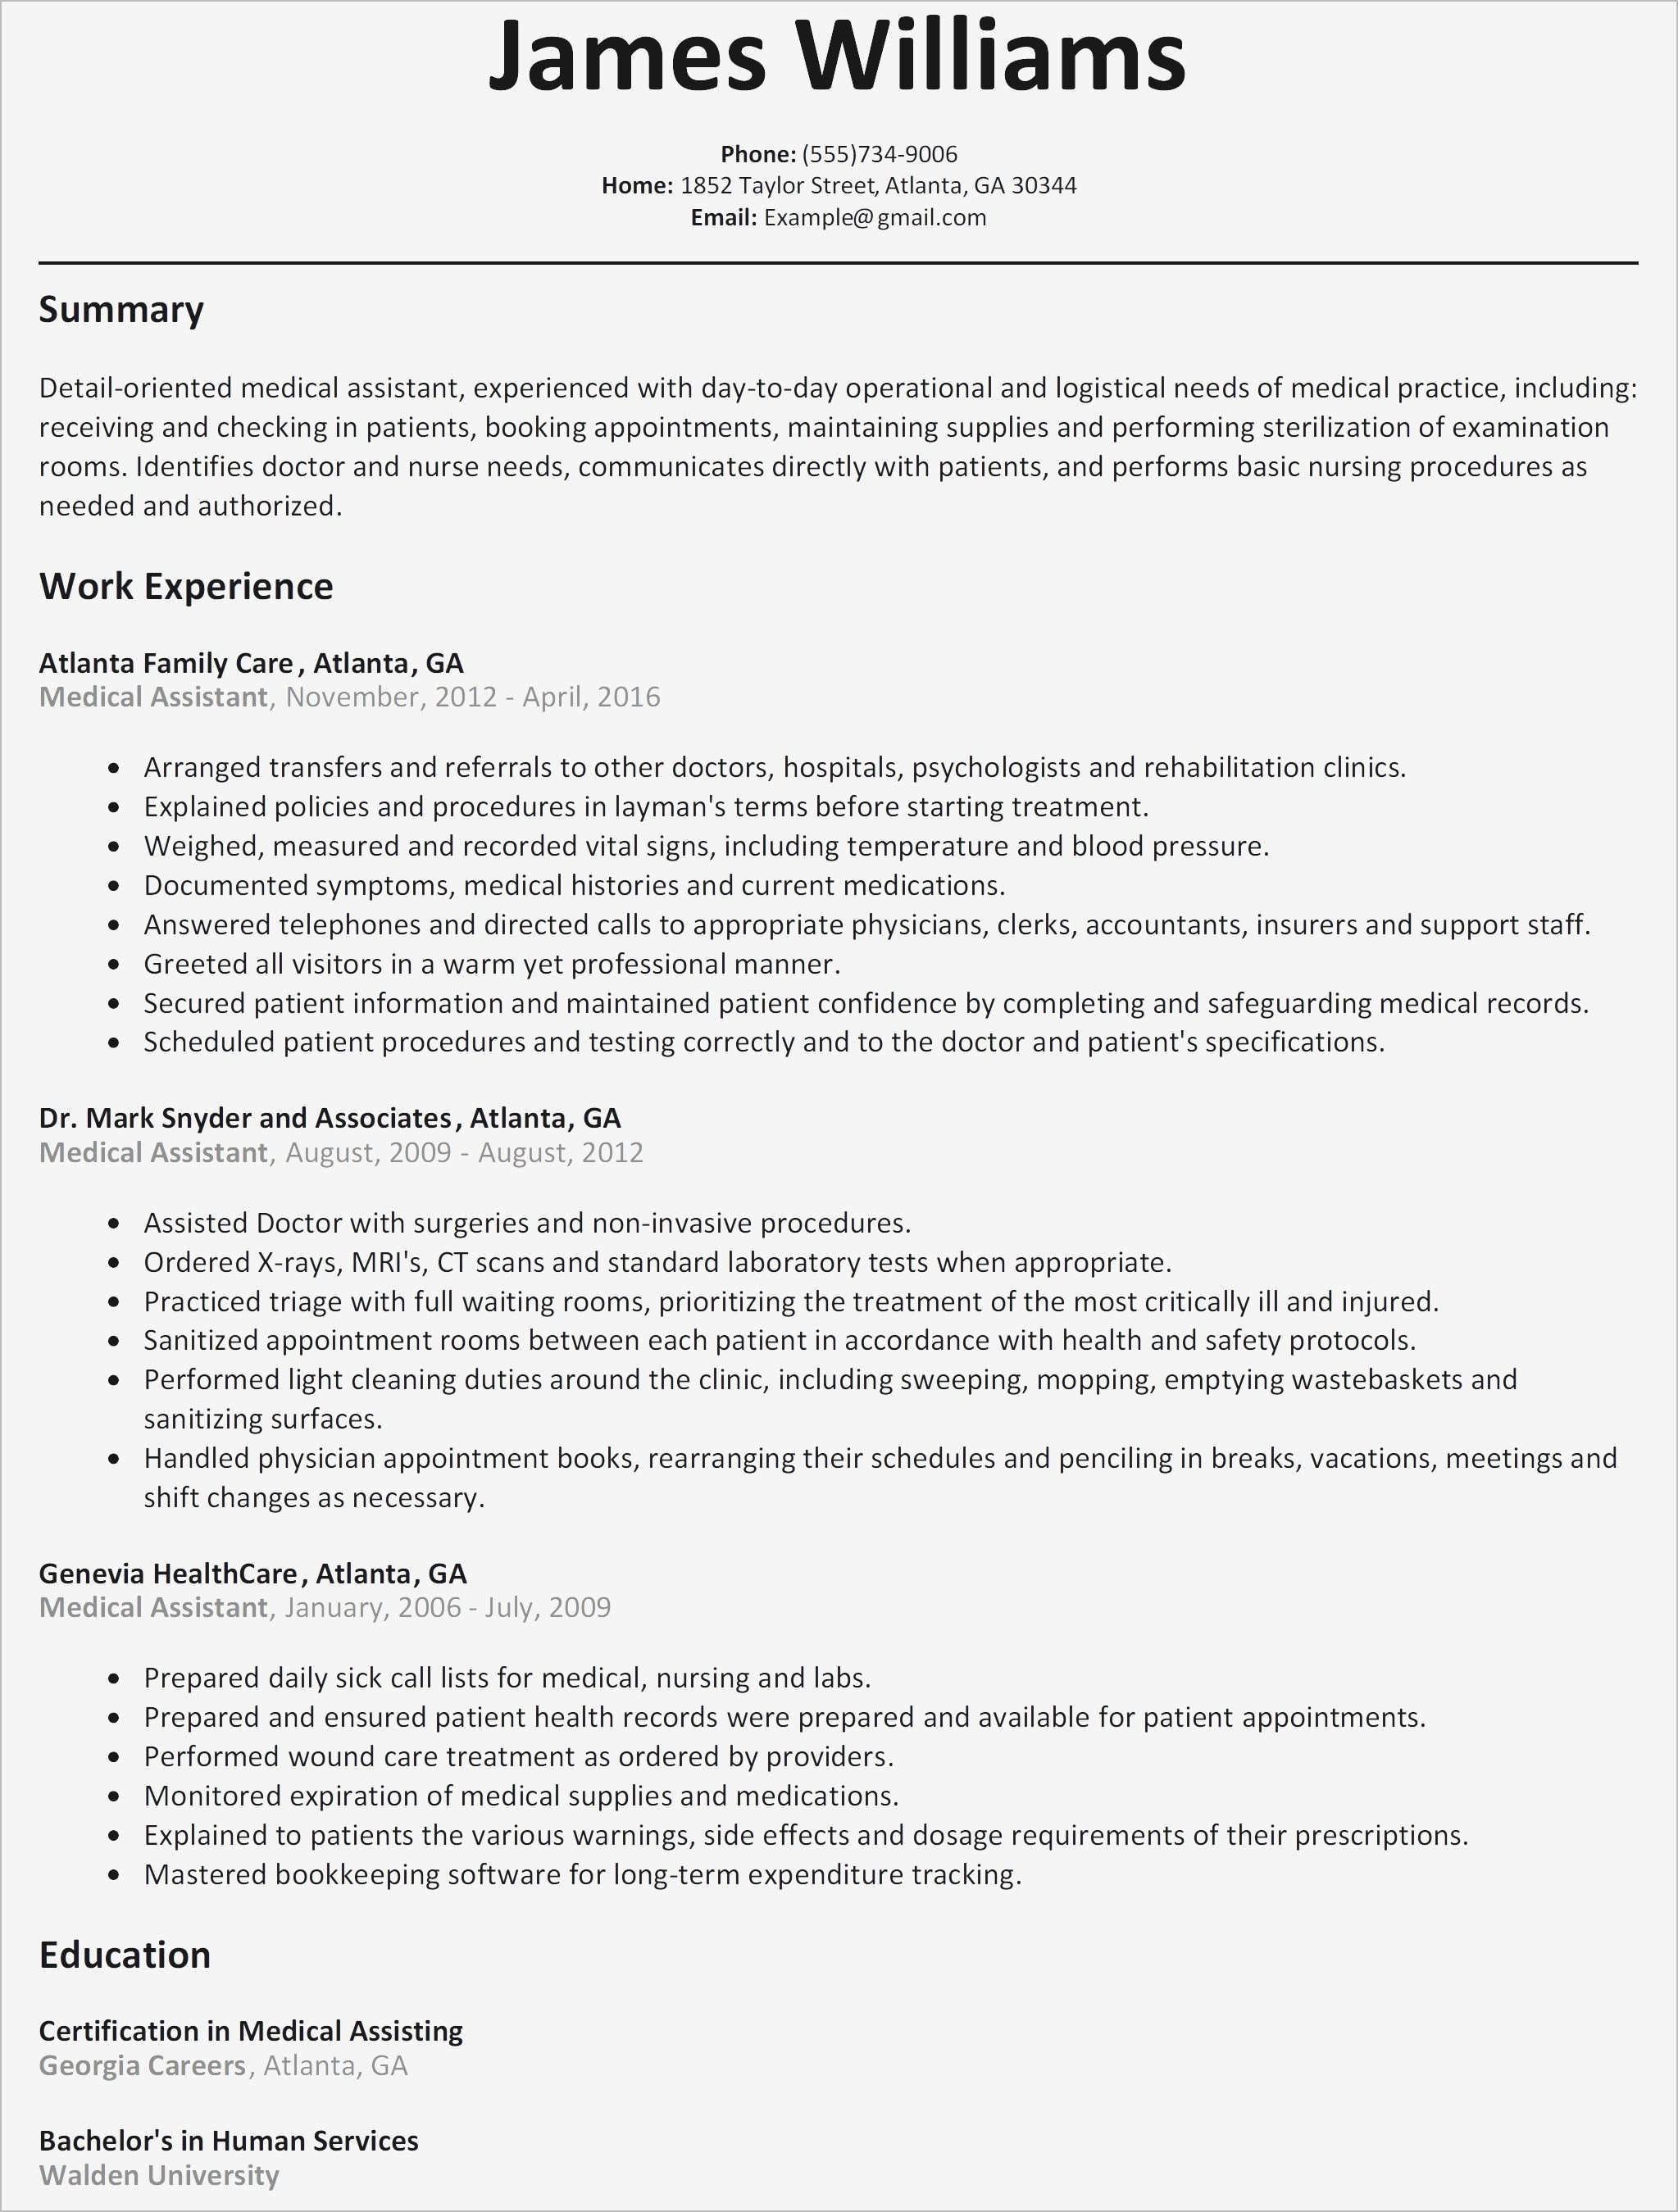 Medical assistant Resume Template Free - Free Resume Template Awesome Lovely Pr Resume Template Elegant